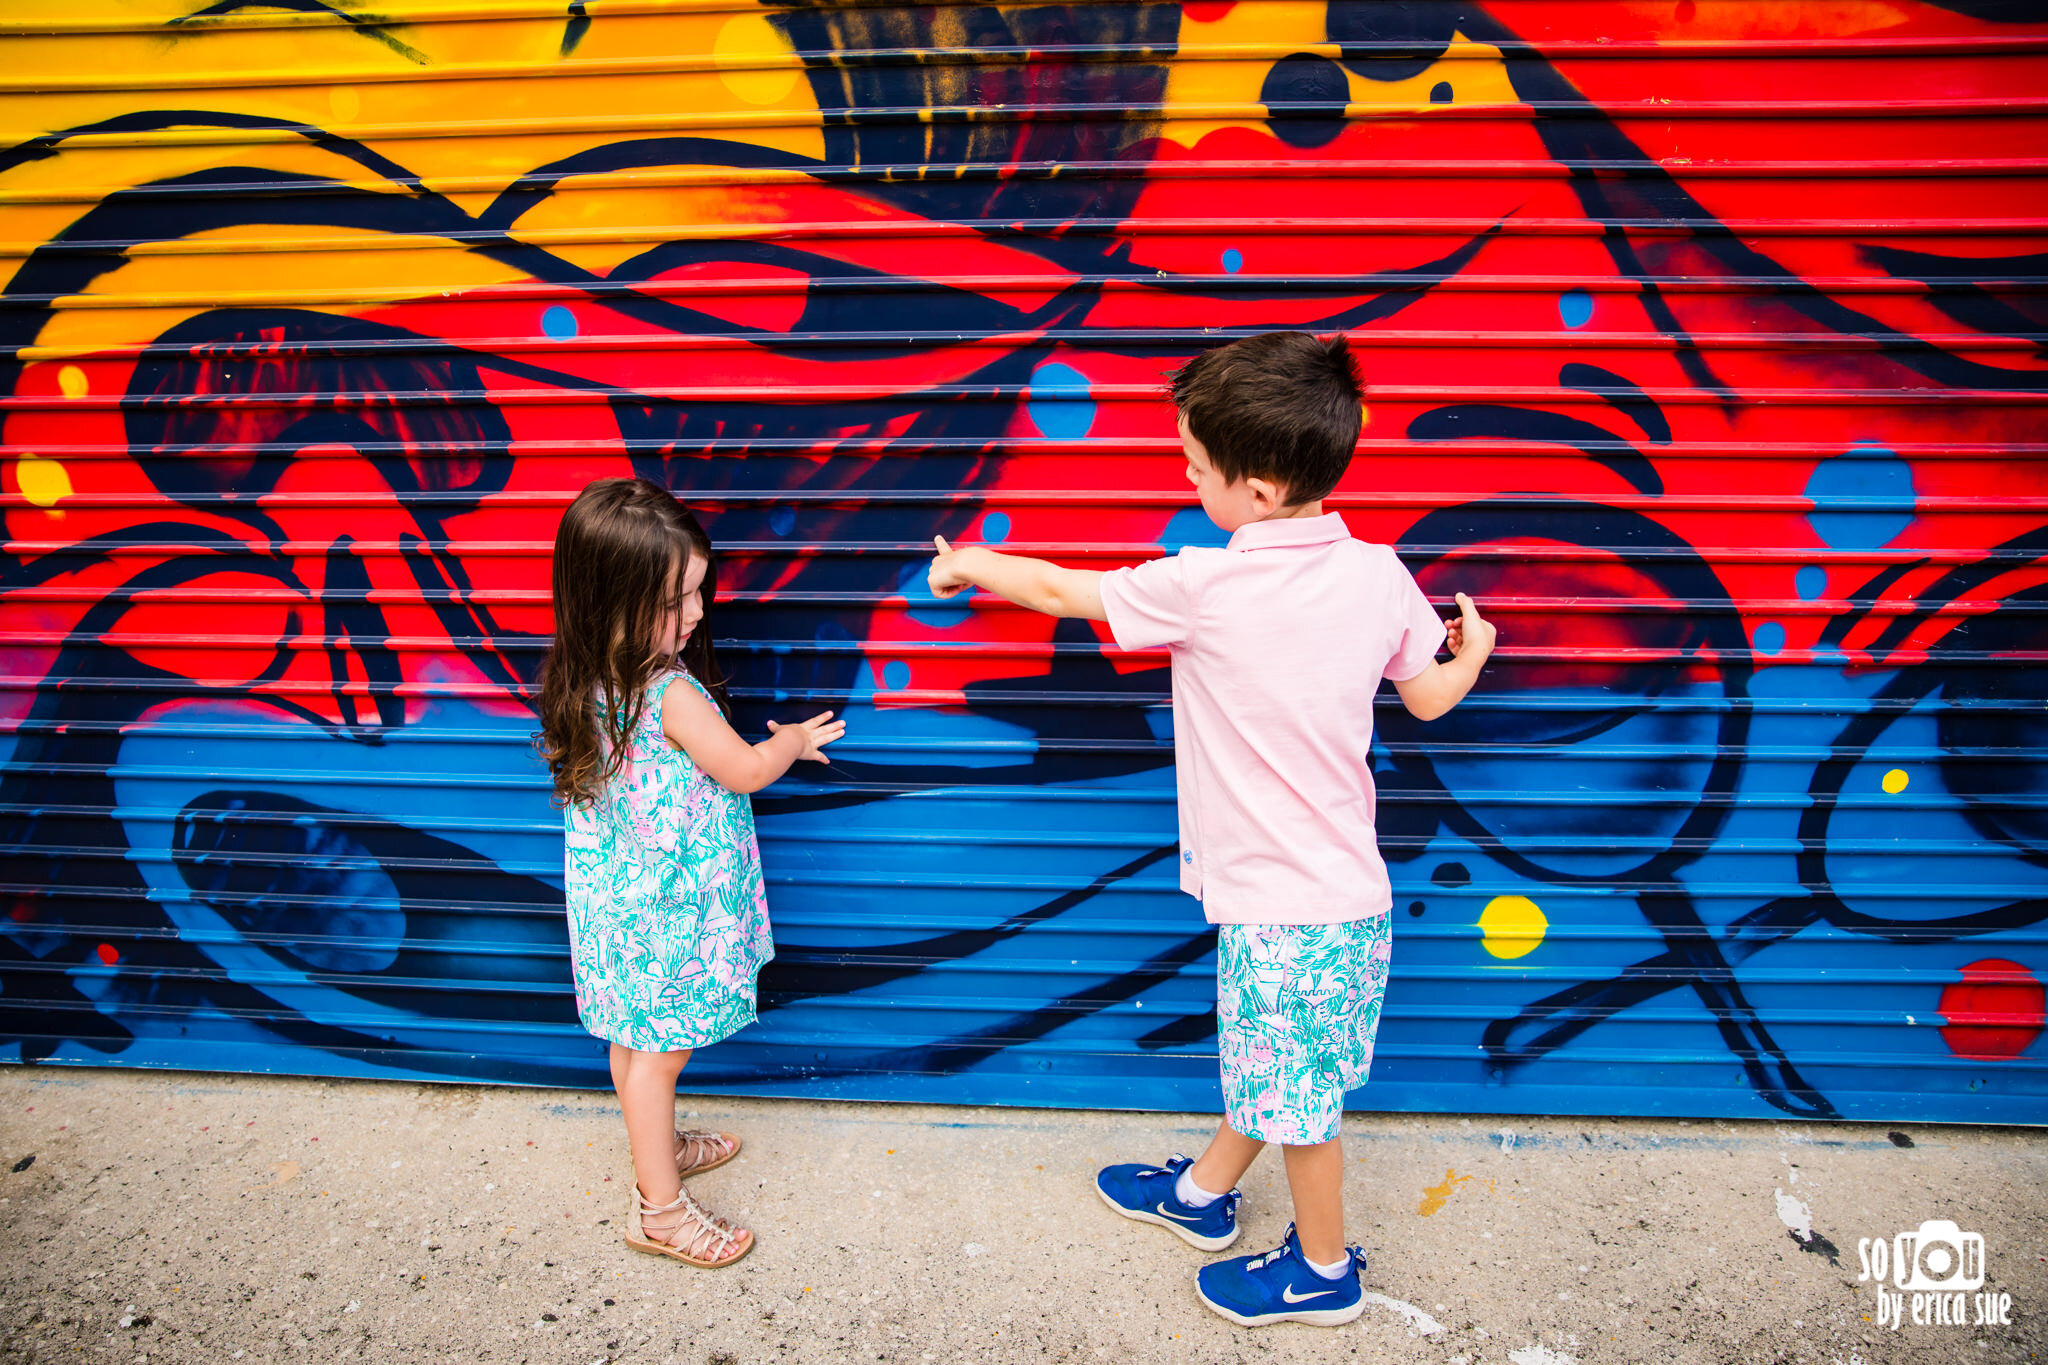 so-you-by-erica-fat-village-ft-lauderdale-murals-lifestyle-family-photographer-6522.JPG